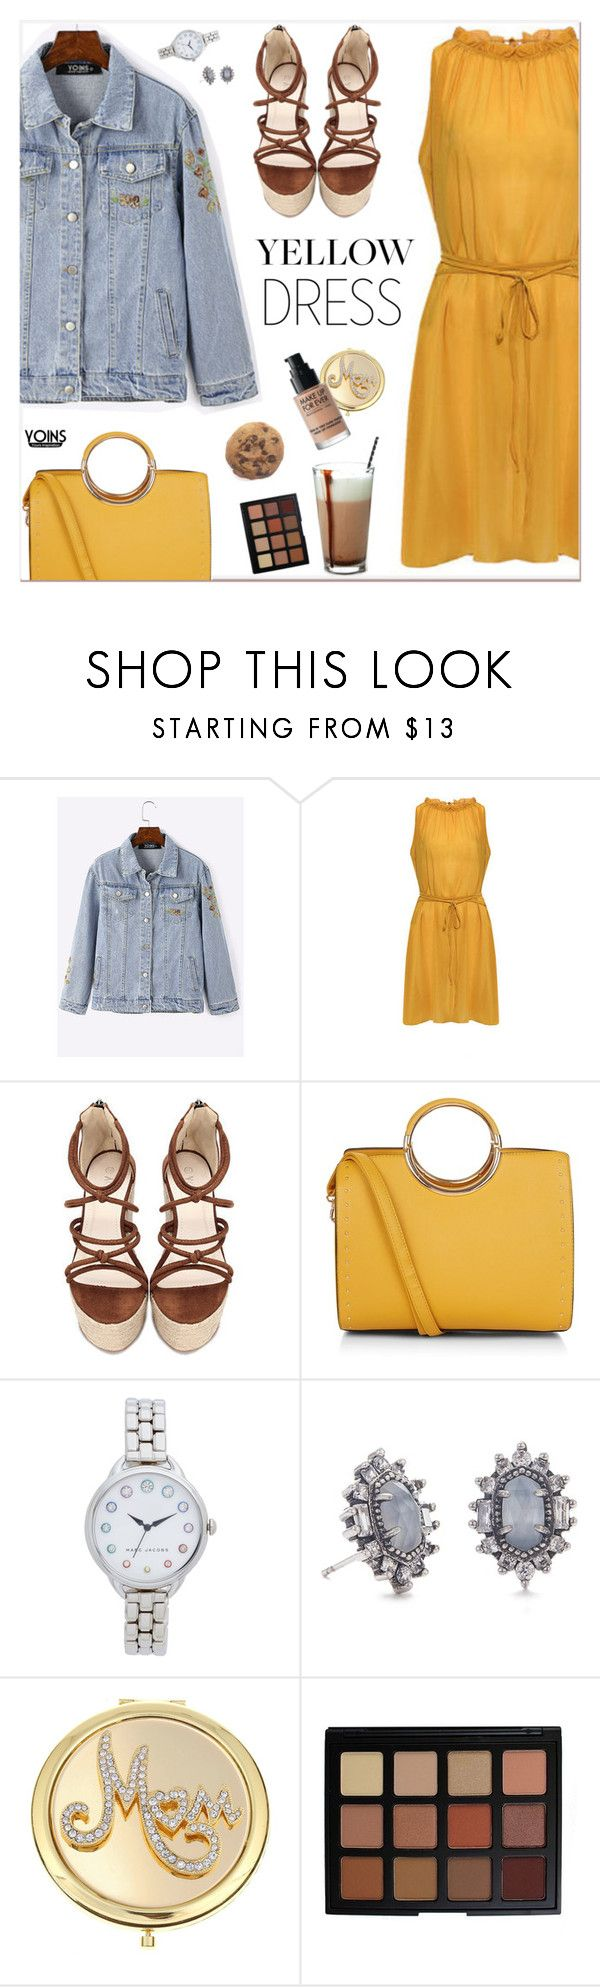 """""""yoins349"""" by nastenkakot ❤ liked on Polyvore featuring New Look, Marc Jacobs, Kendra Scott, Monet, Morphe, MAKE UP FOR EVER, yoins, yoinscollection and loveyoins"""